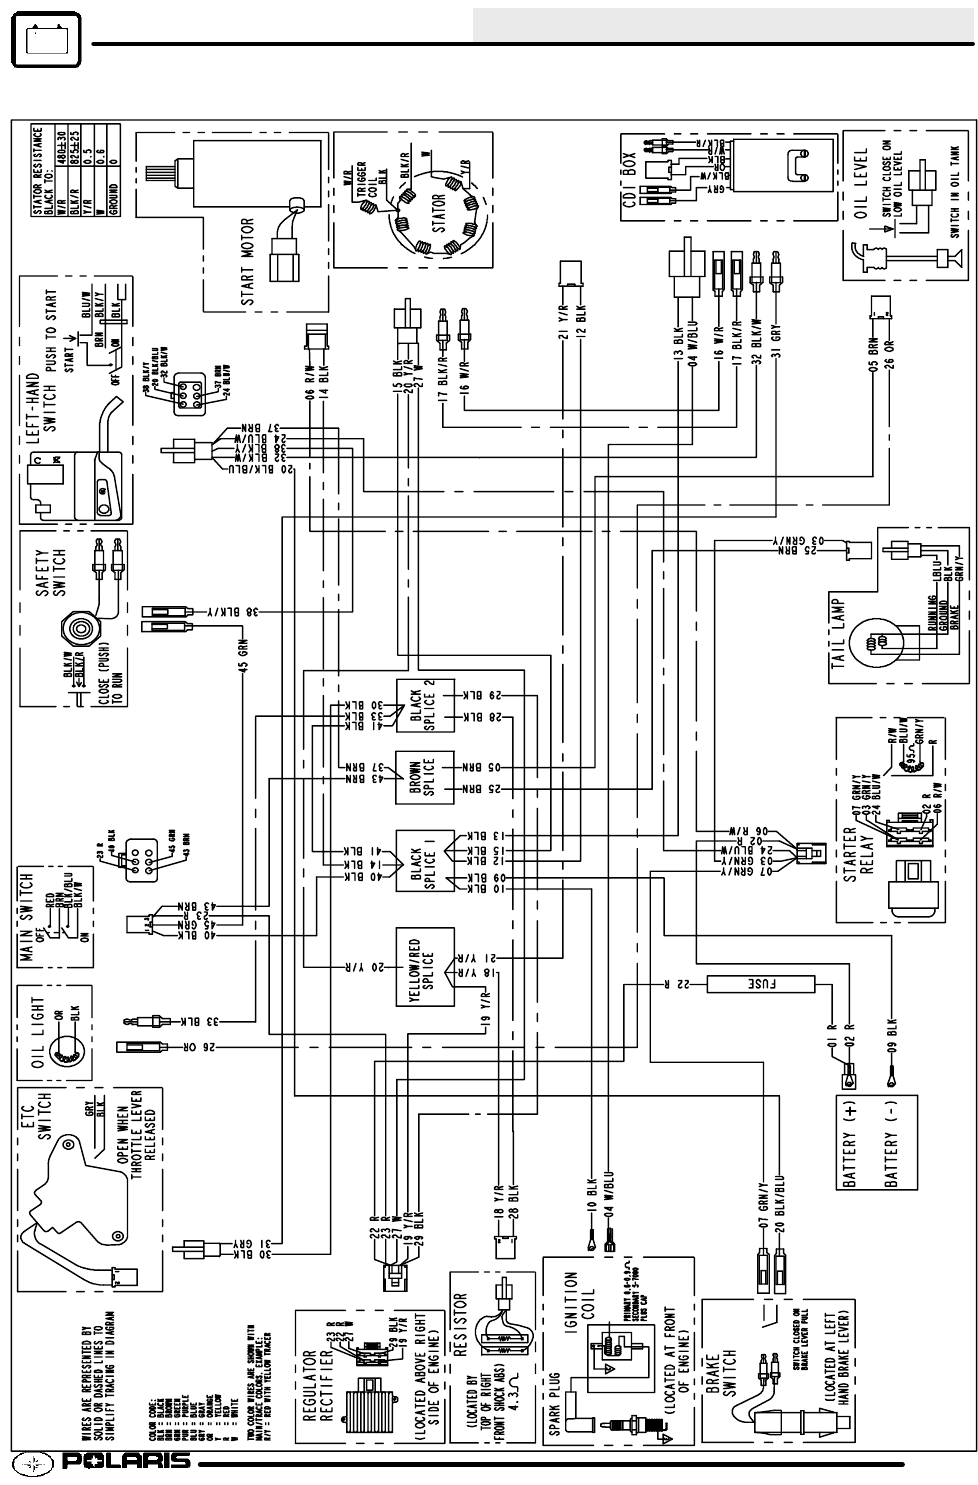 polaris sportsman wiring diagram automotive 1998 polaris sportsman wiring diagram